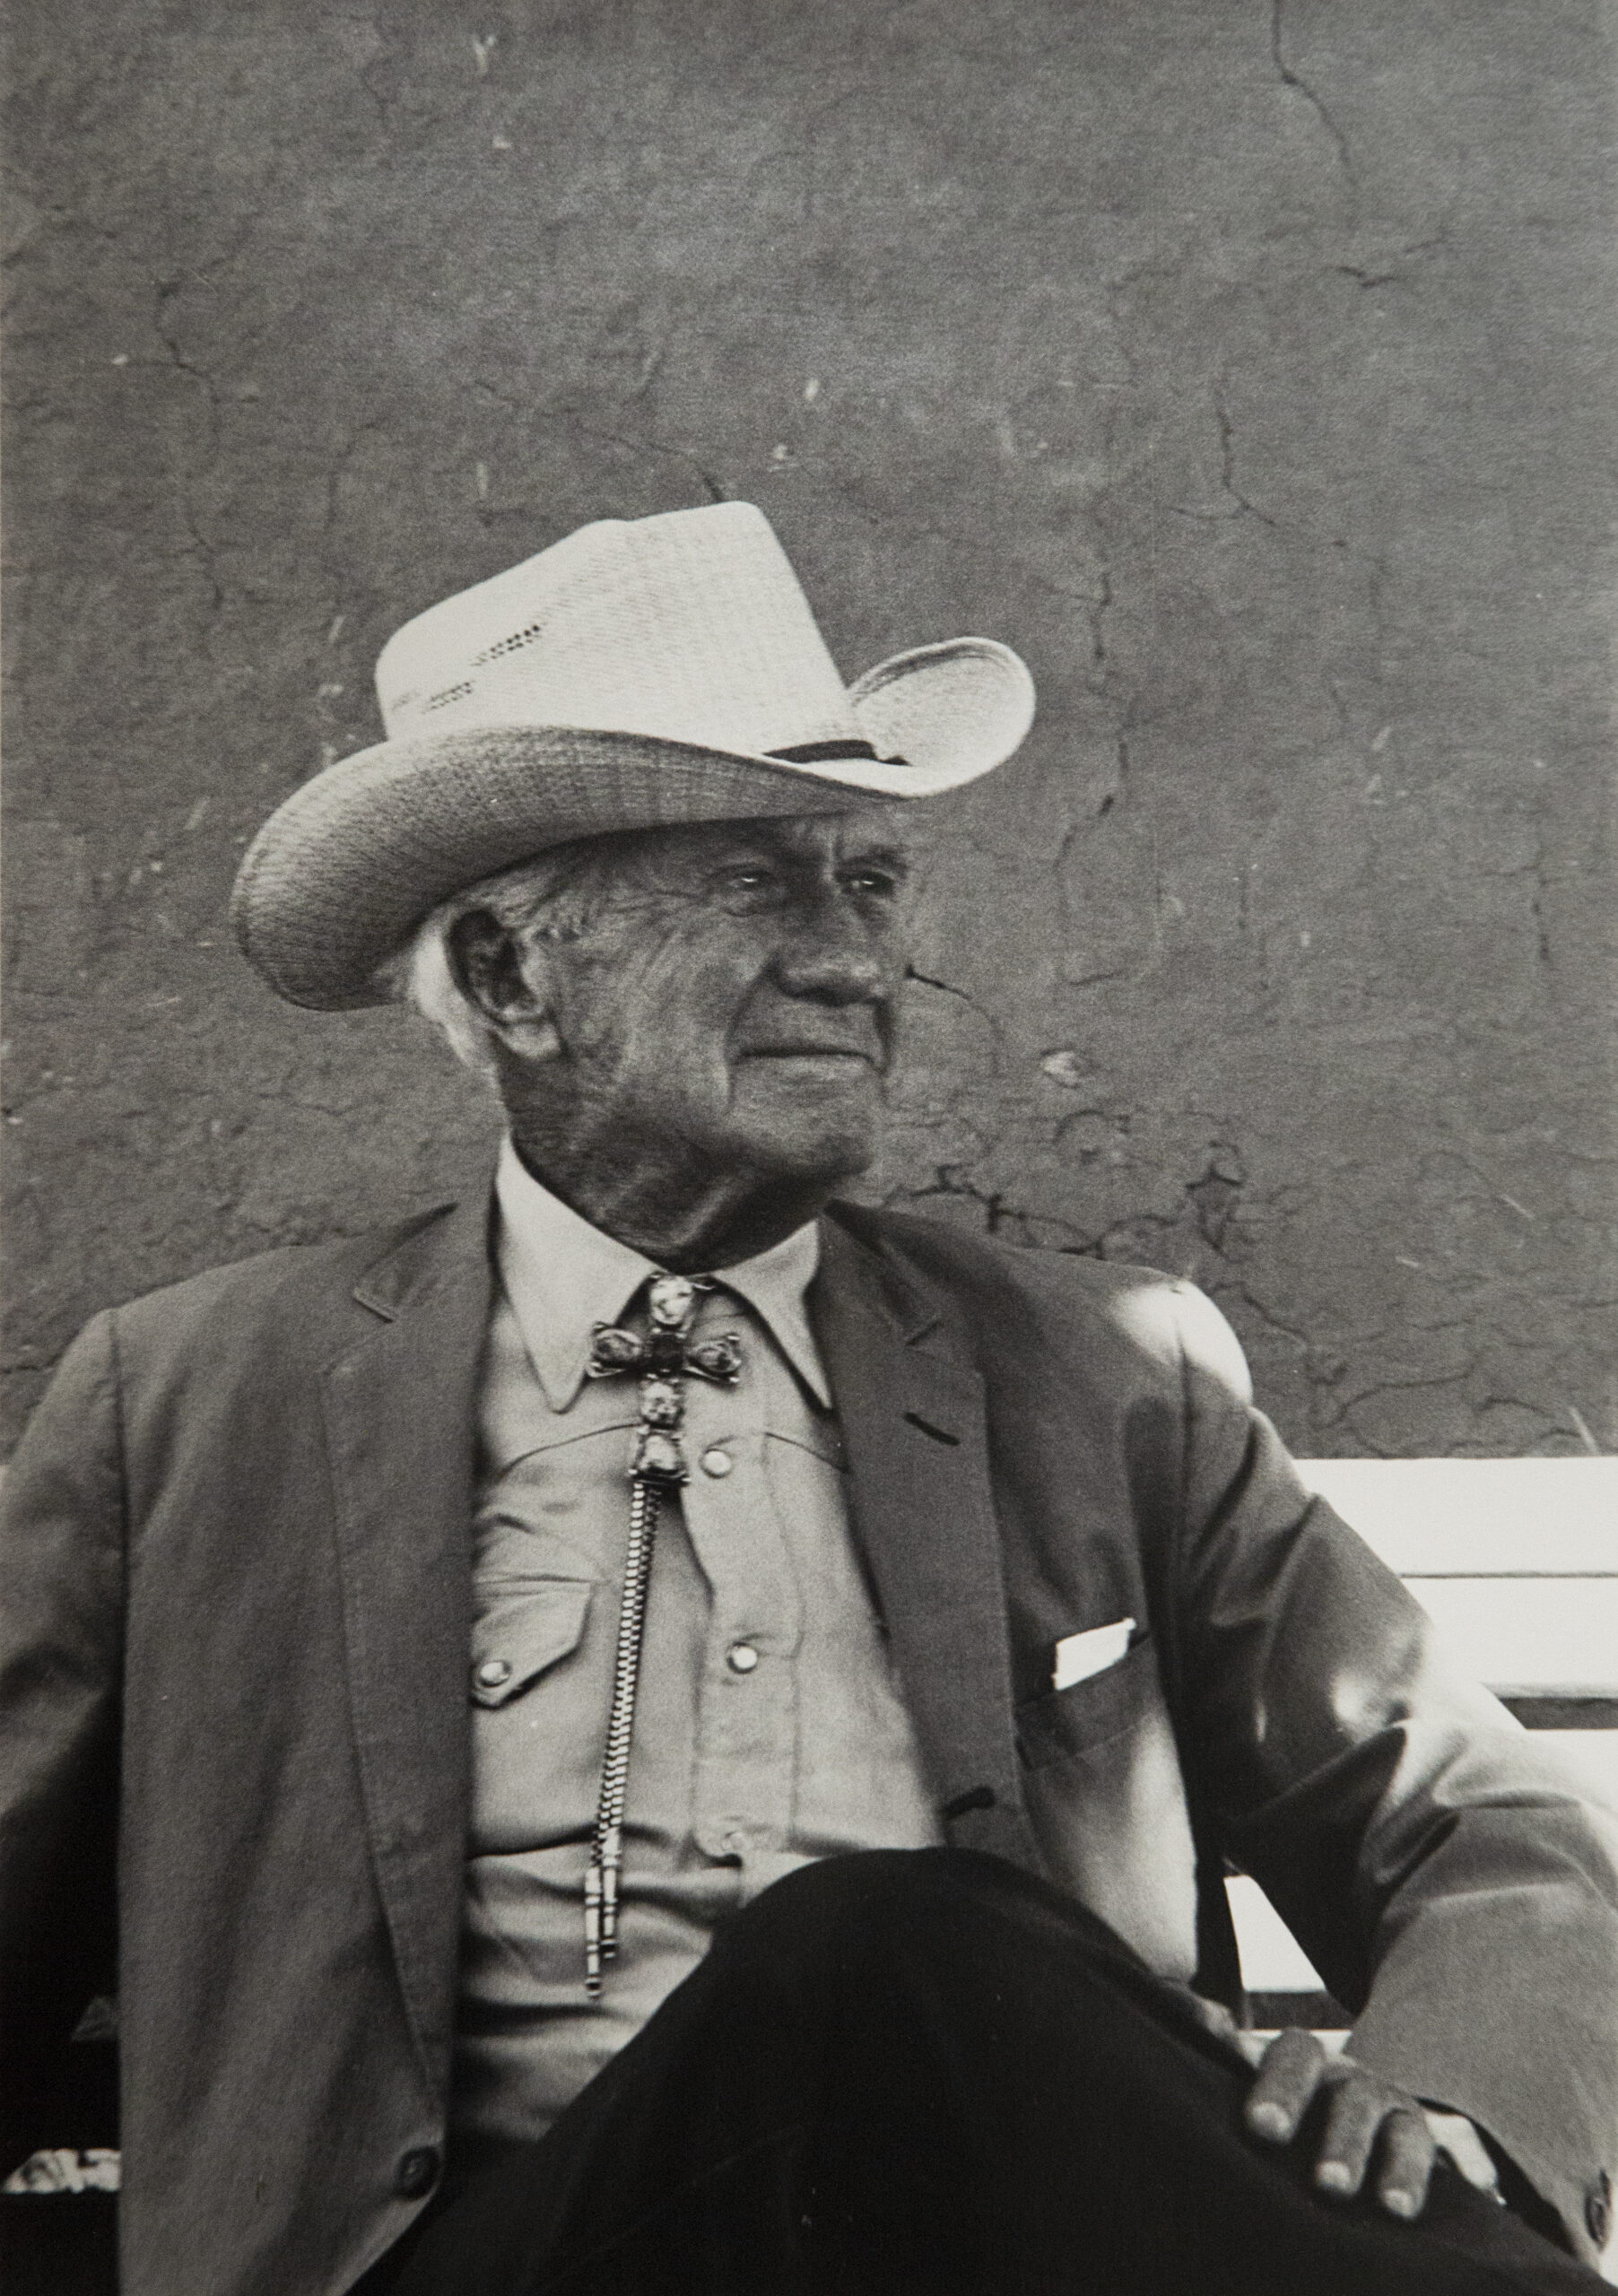 Historical photo of A.R. Mitchell